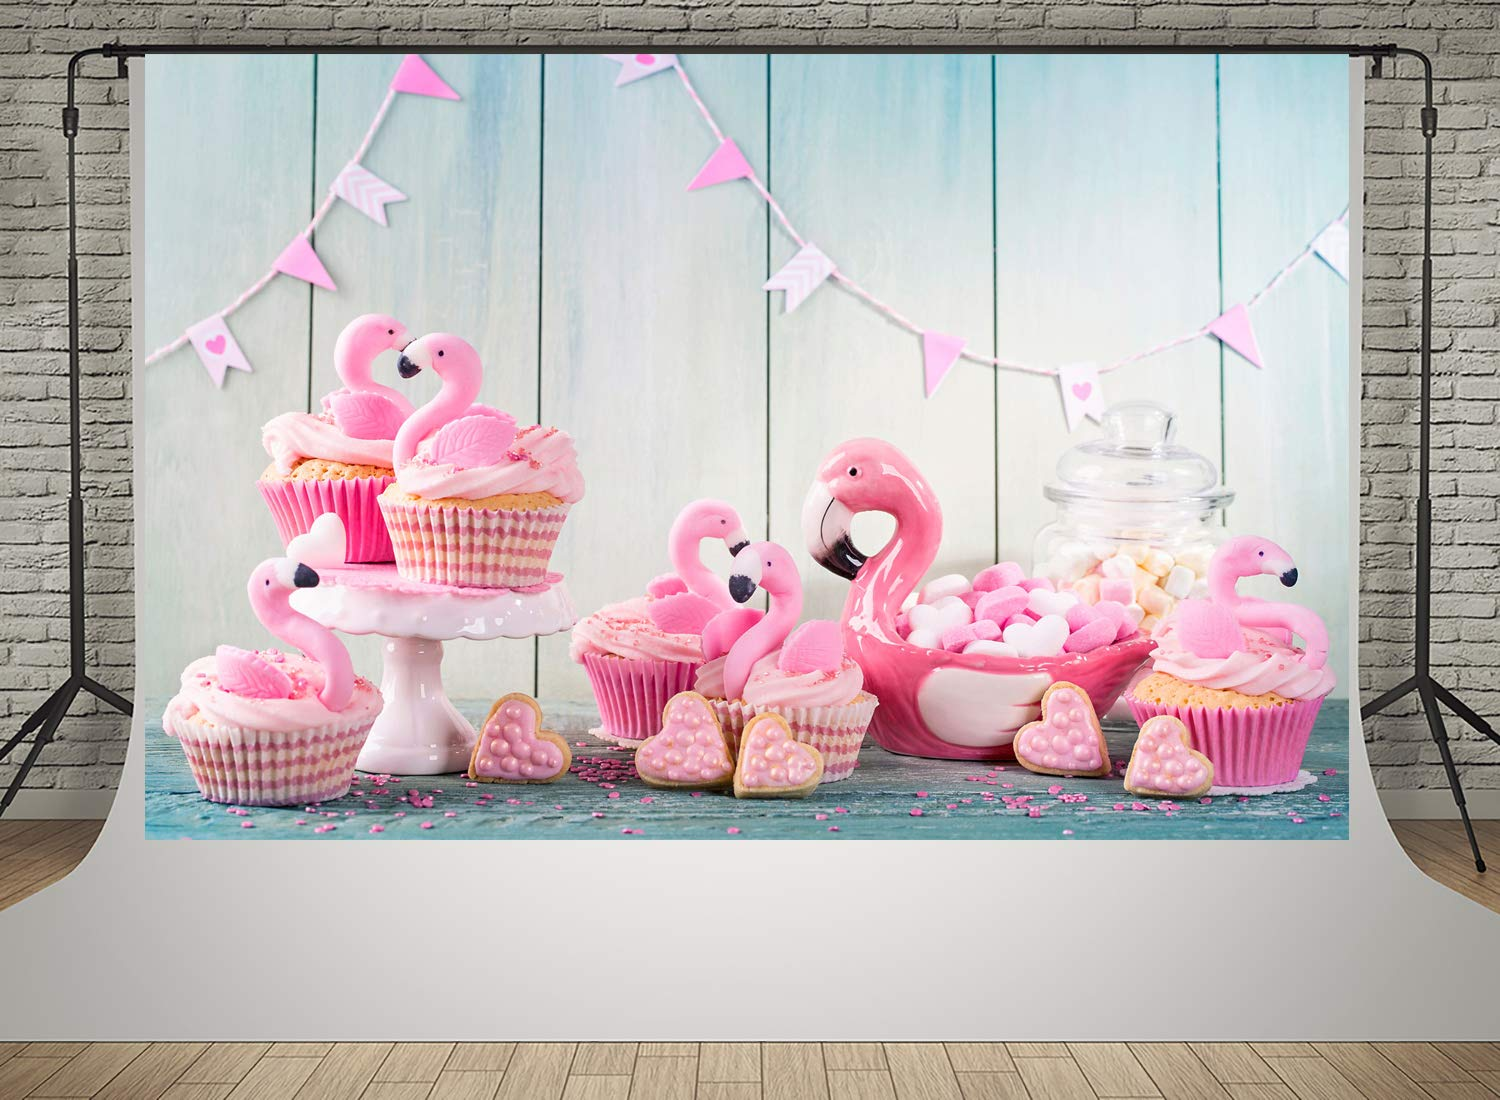 Kate 7x5ft Baby Shower Photography Backdrops Pink Flamingo Cup Cake Backgrounds Photo Birthday Party Decoration Backdrop Shooting